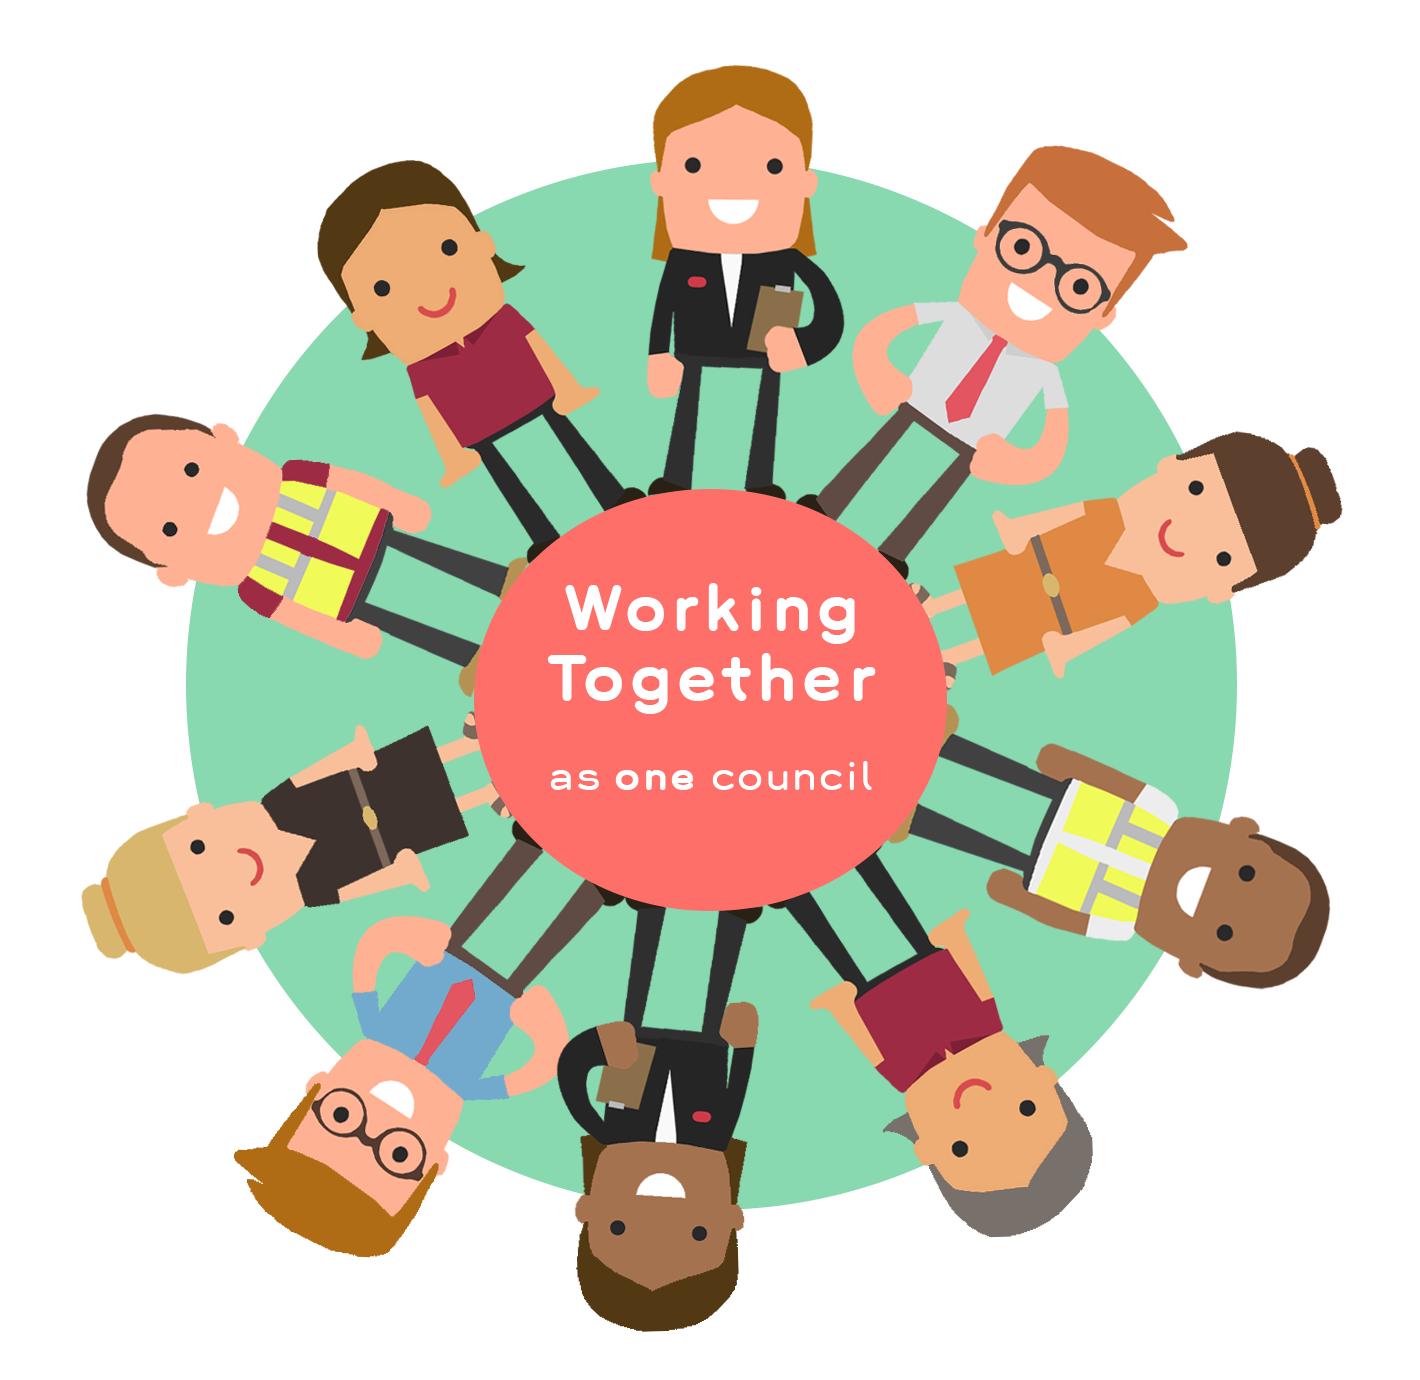 Cartoon style logo with people in a circle around the words Working Together as one council